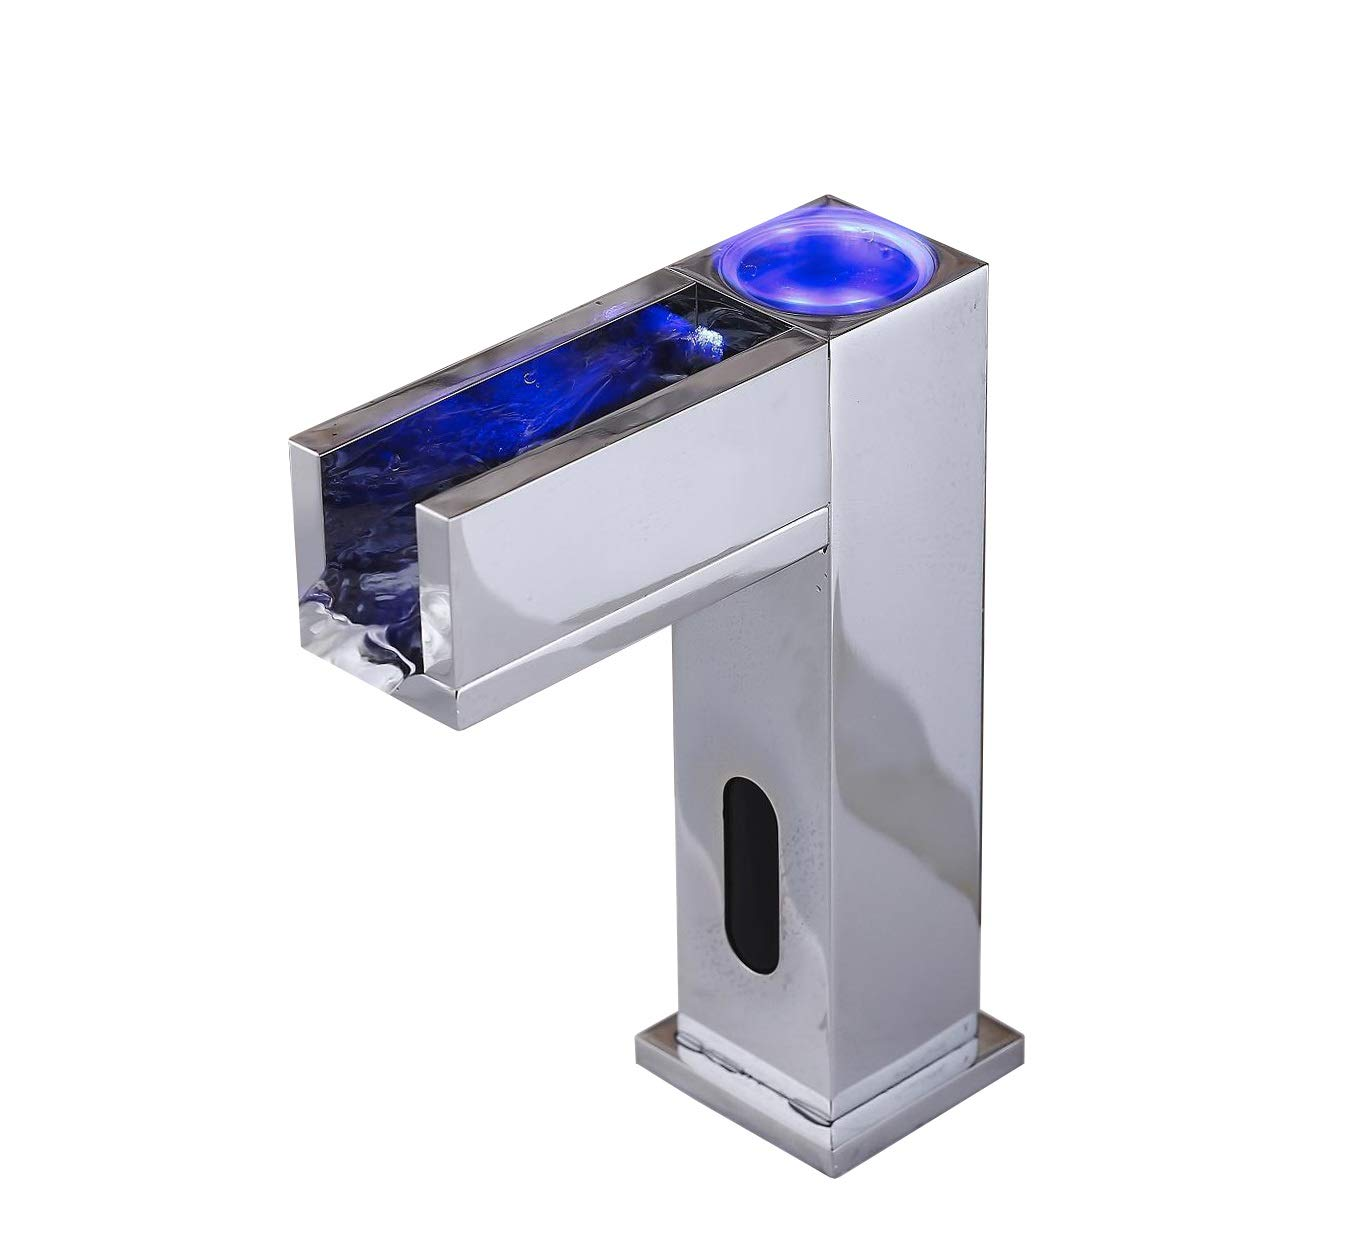 Gangang Led Automatic Touchless Sensor Waterfall Bathroom Sink Vessel Hot and Cold Faucet (waterfull B)